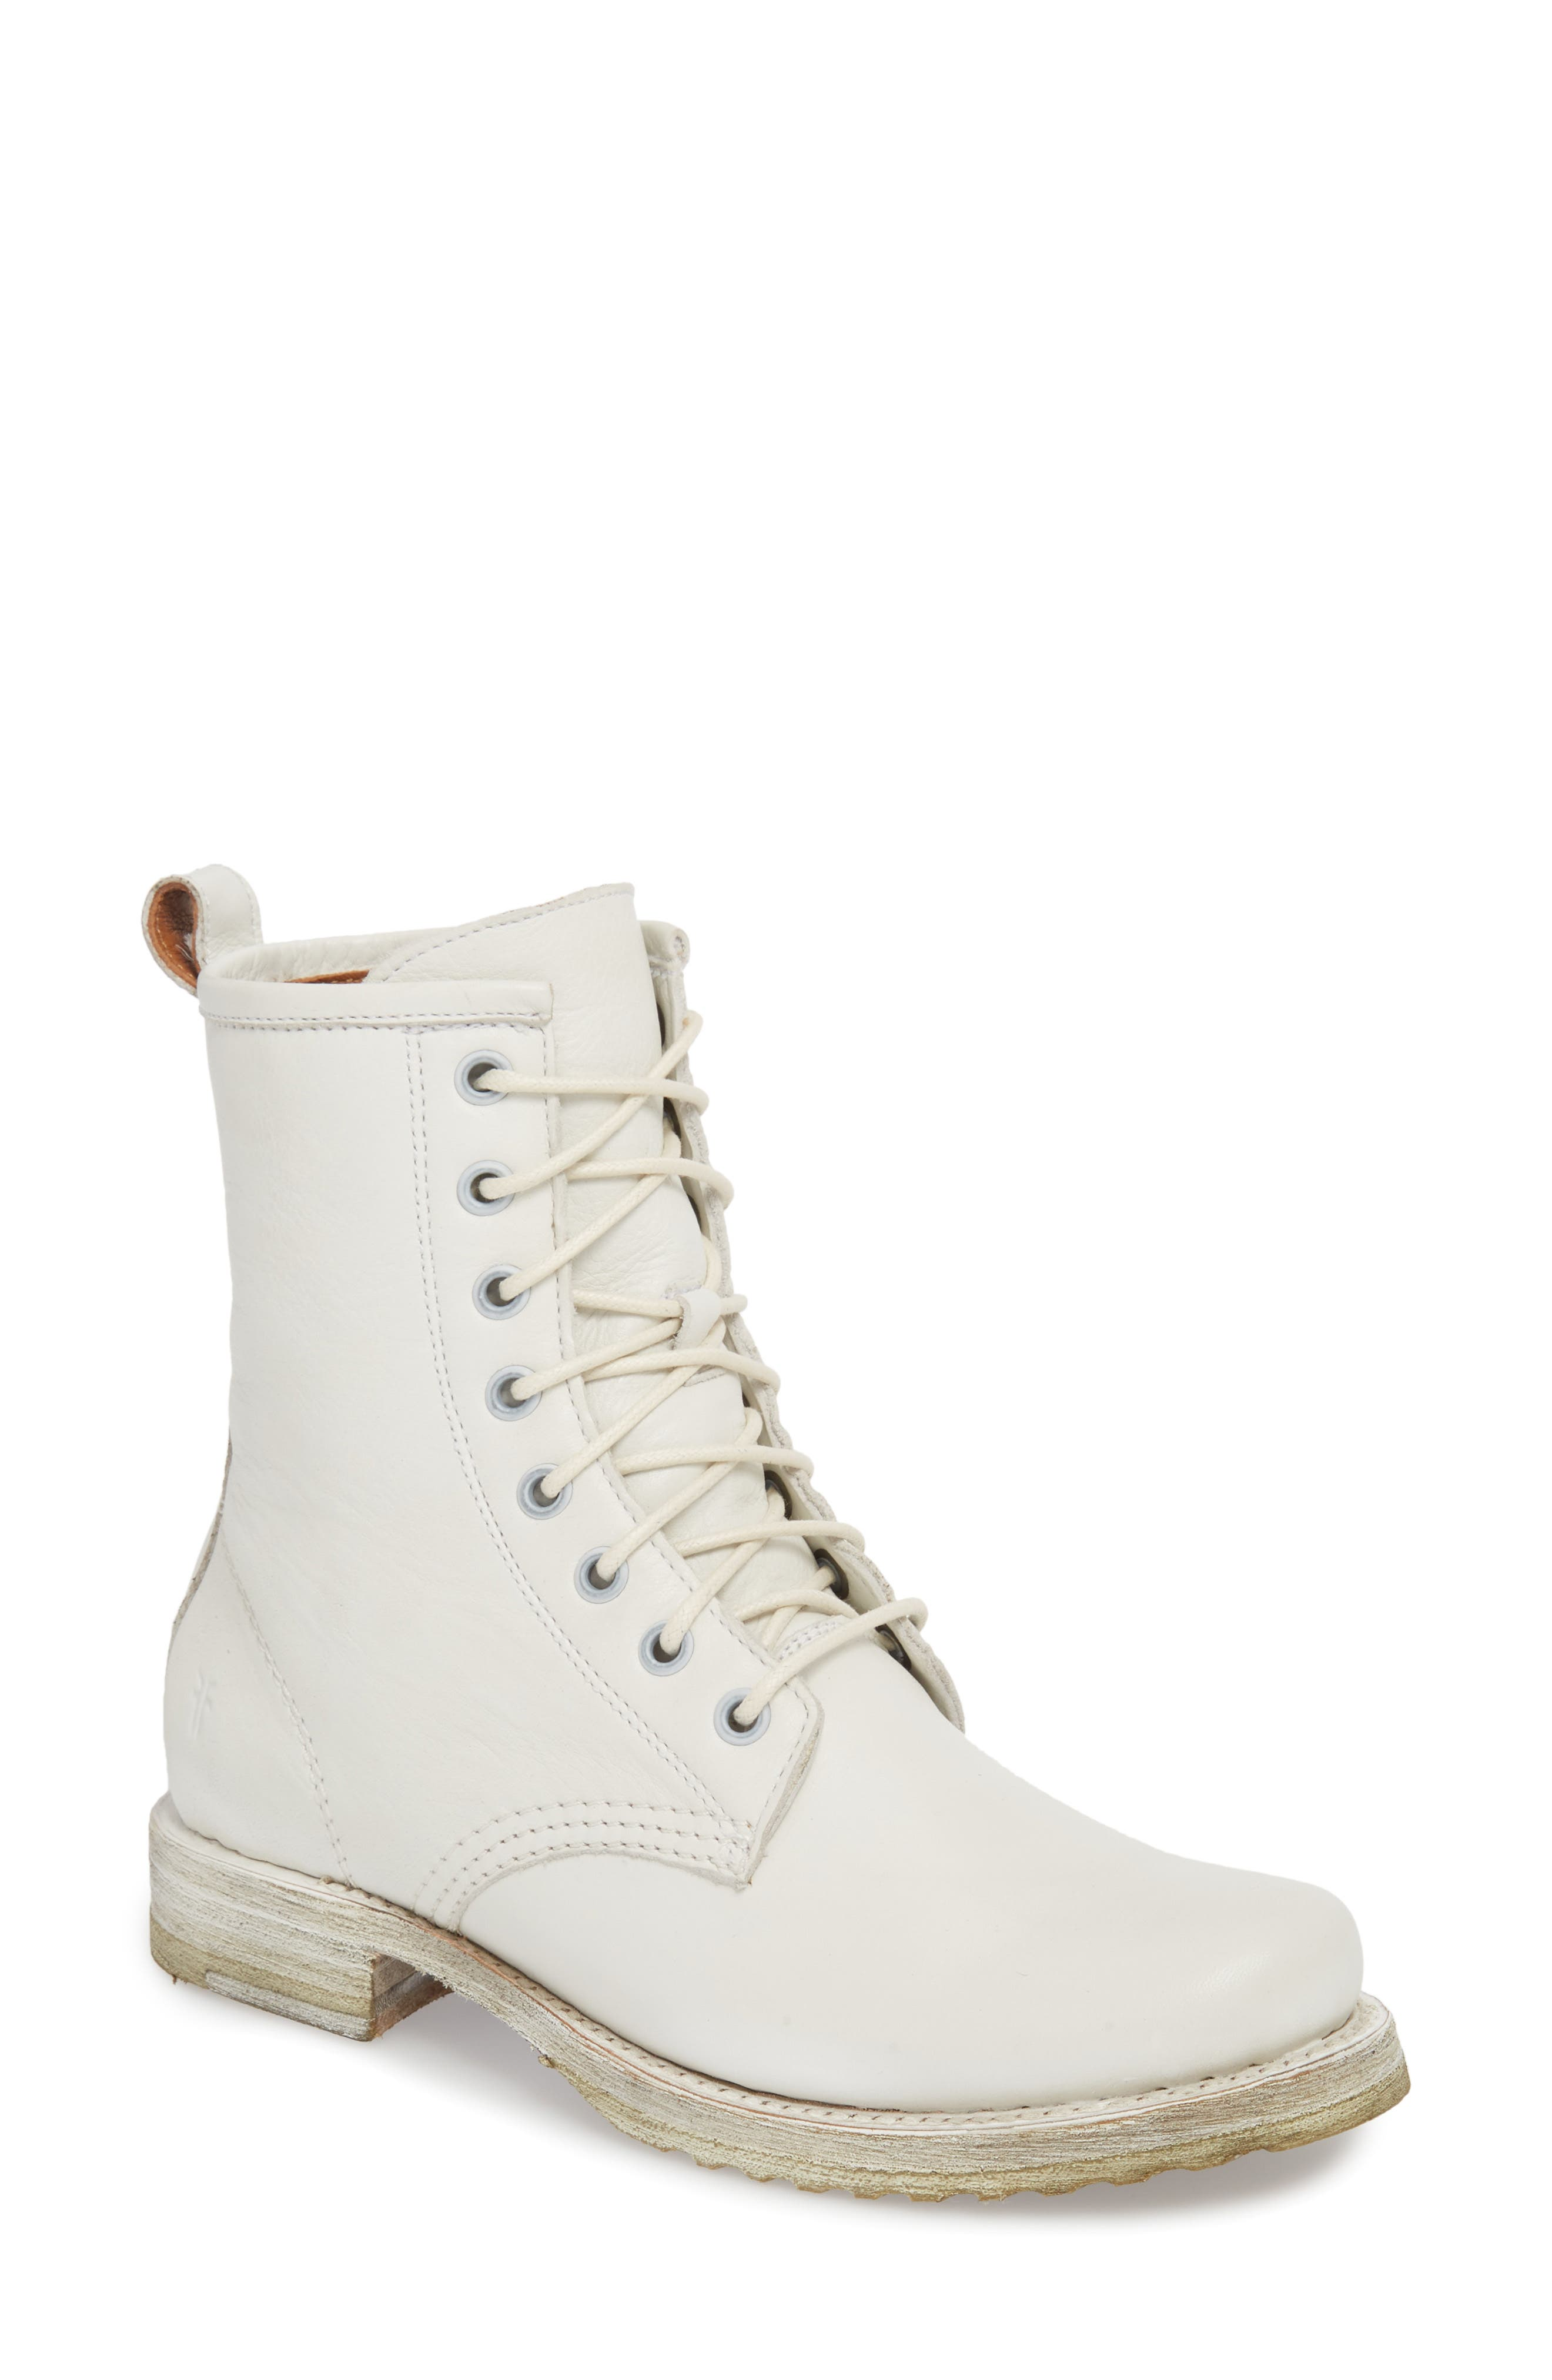 FRYE Veronica Combat Boot, Main, color, WHITE LEATHER